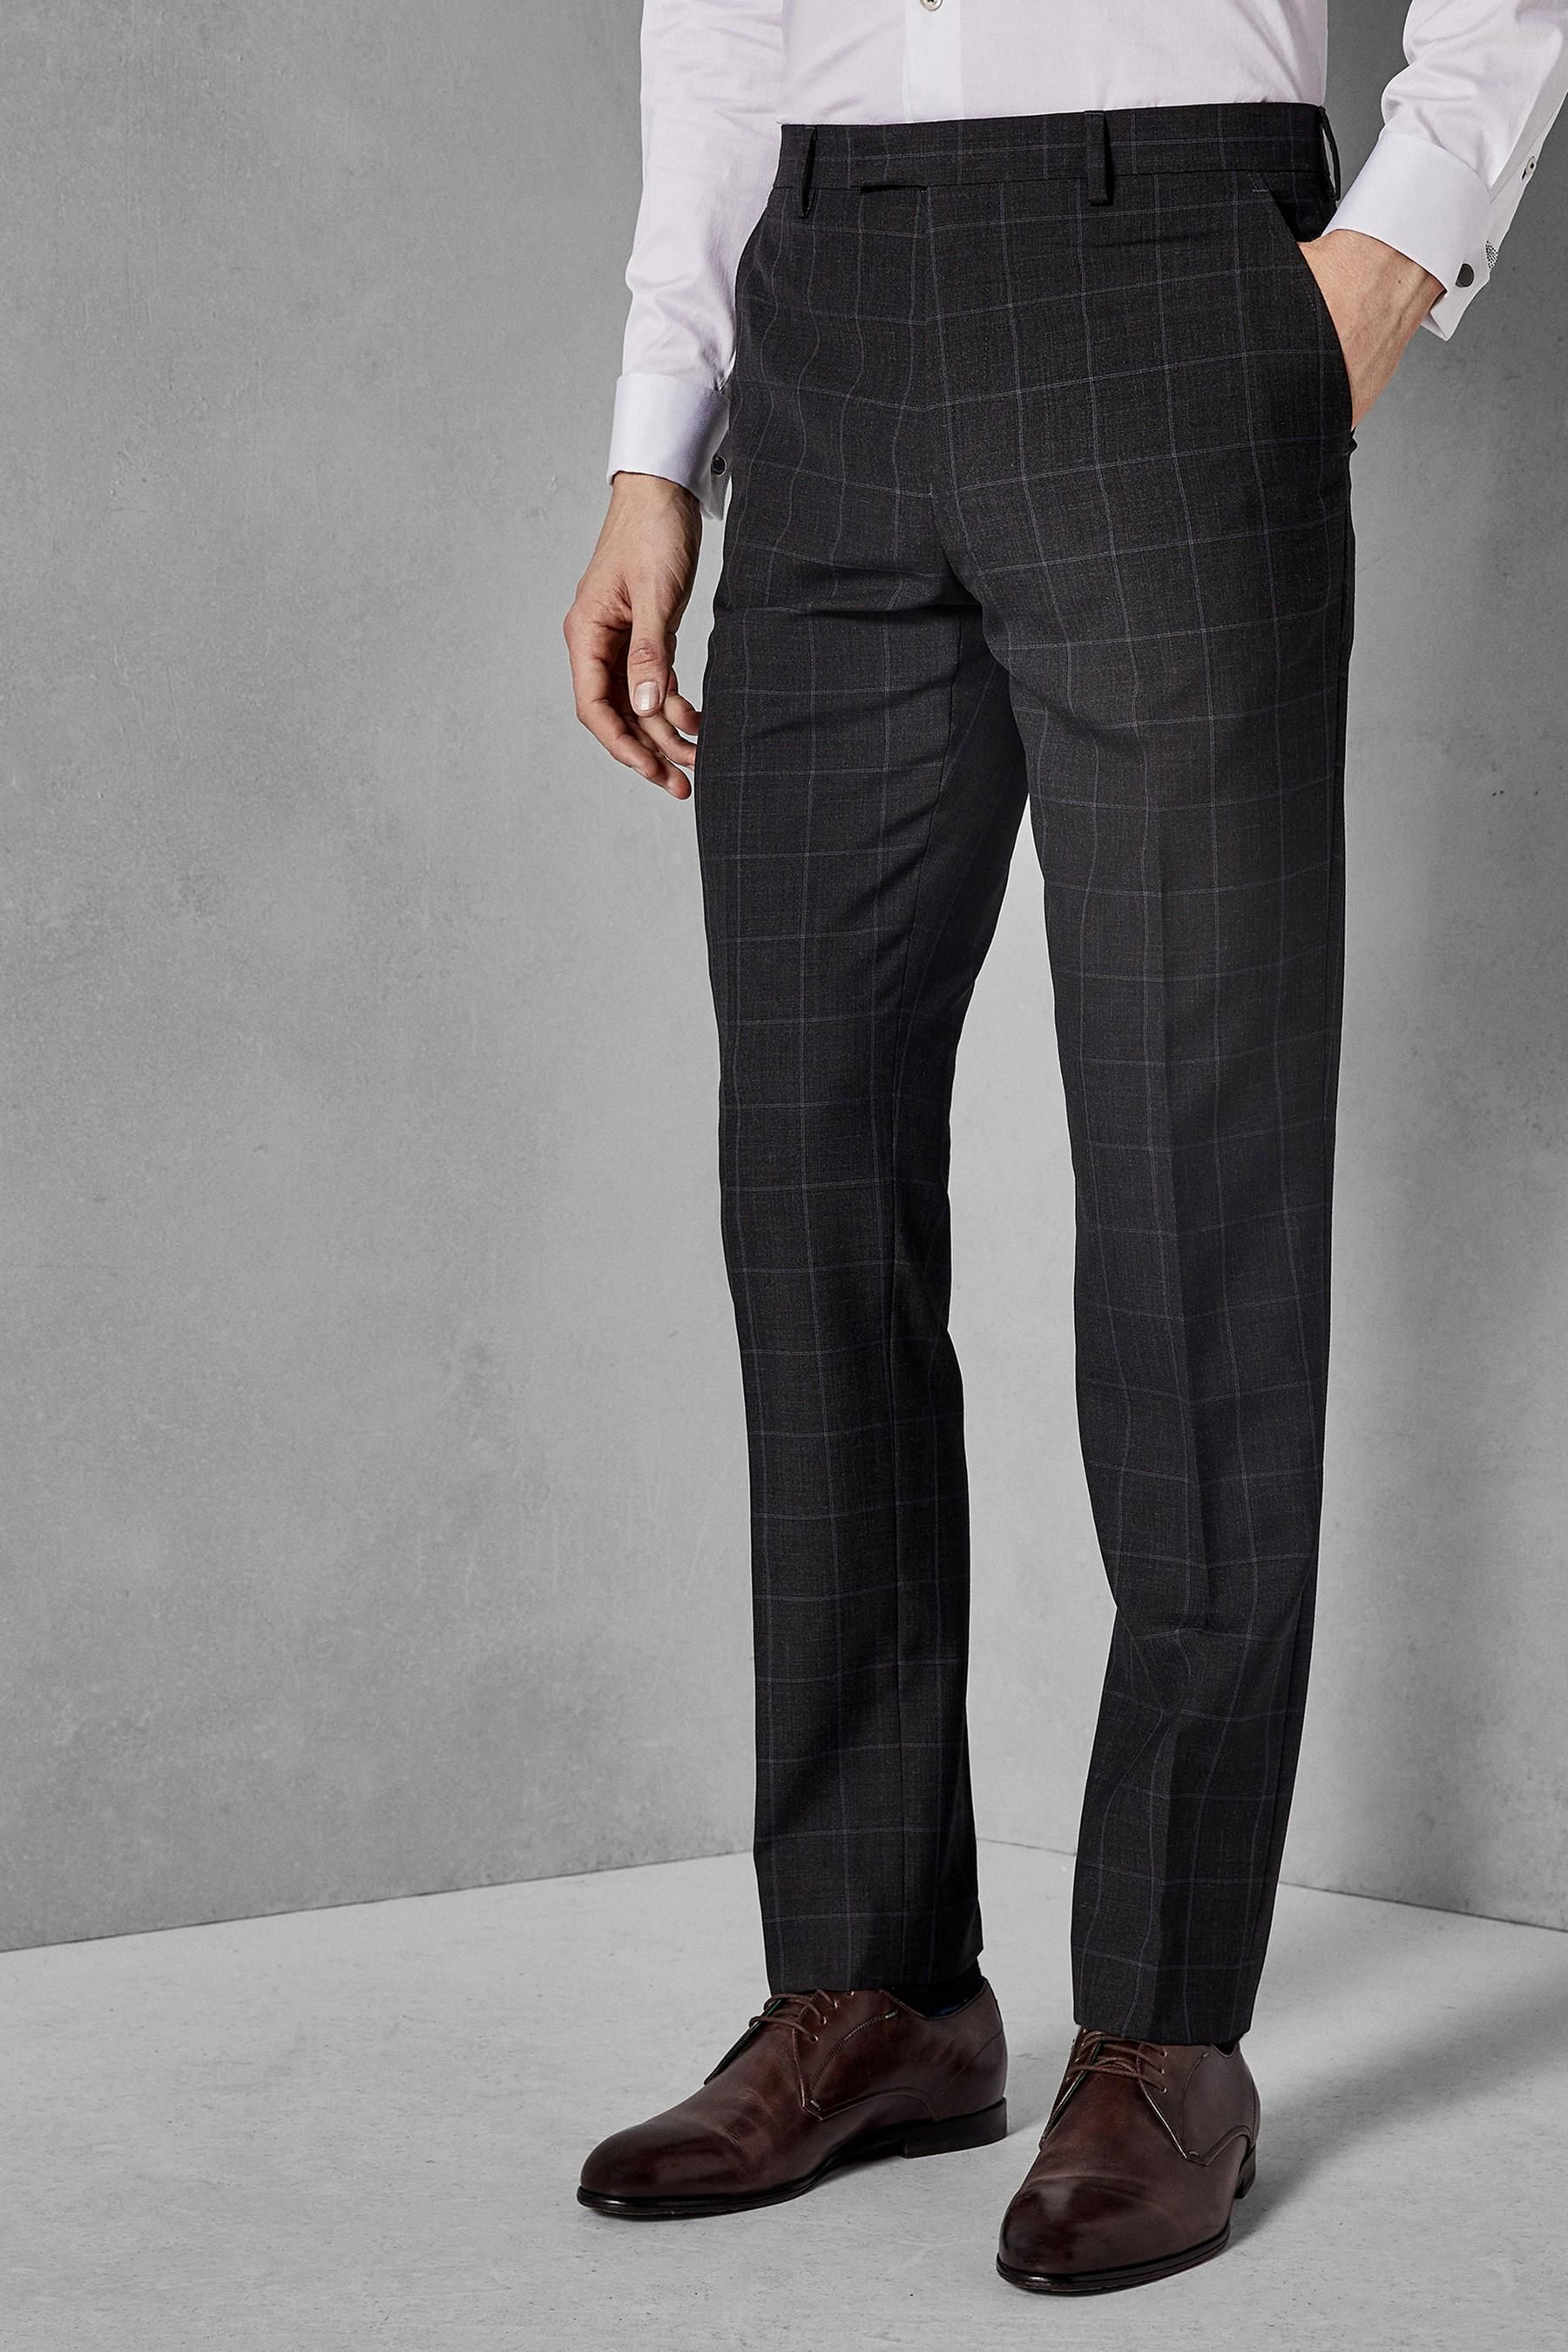 974849589a351e Mens Ted Baker Charcoal Zemla Sovereign Windowpane Suit Trouser - Grey   Menssuits